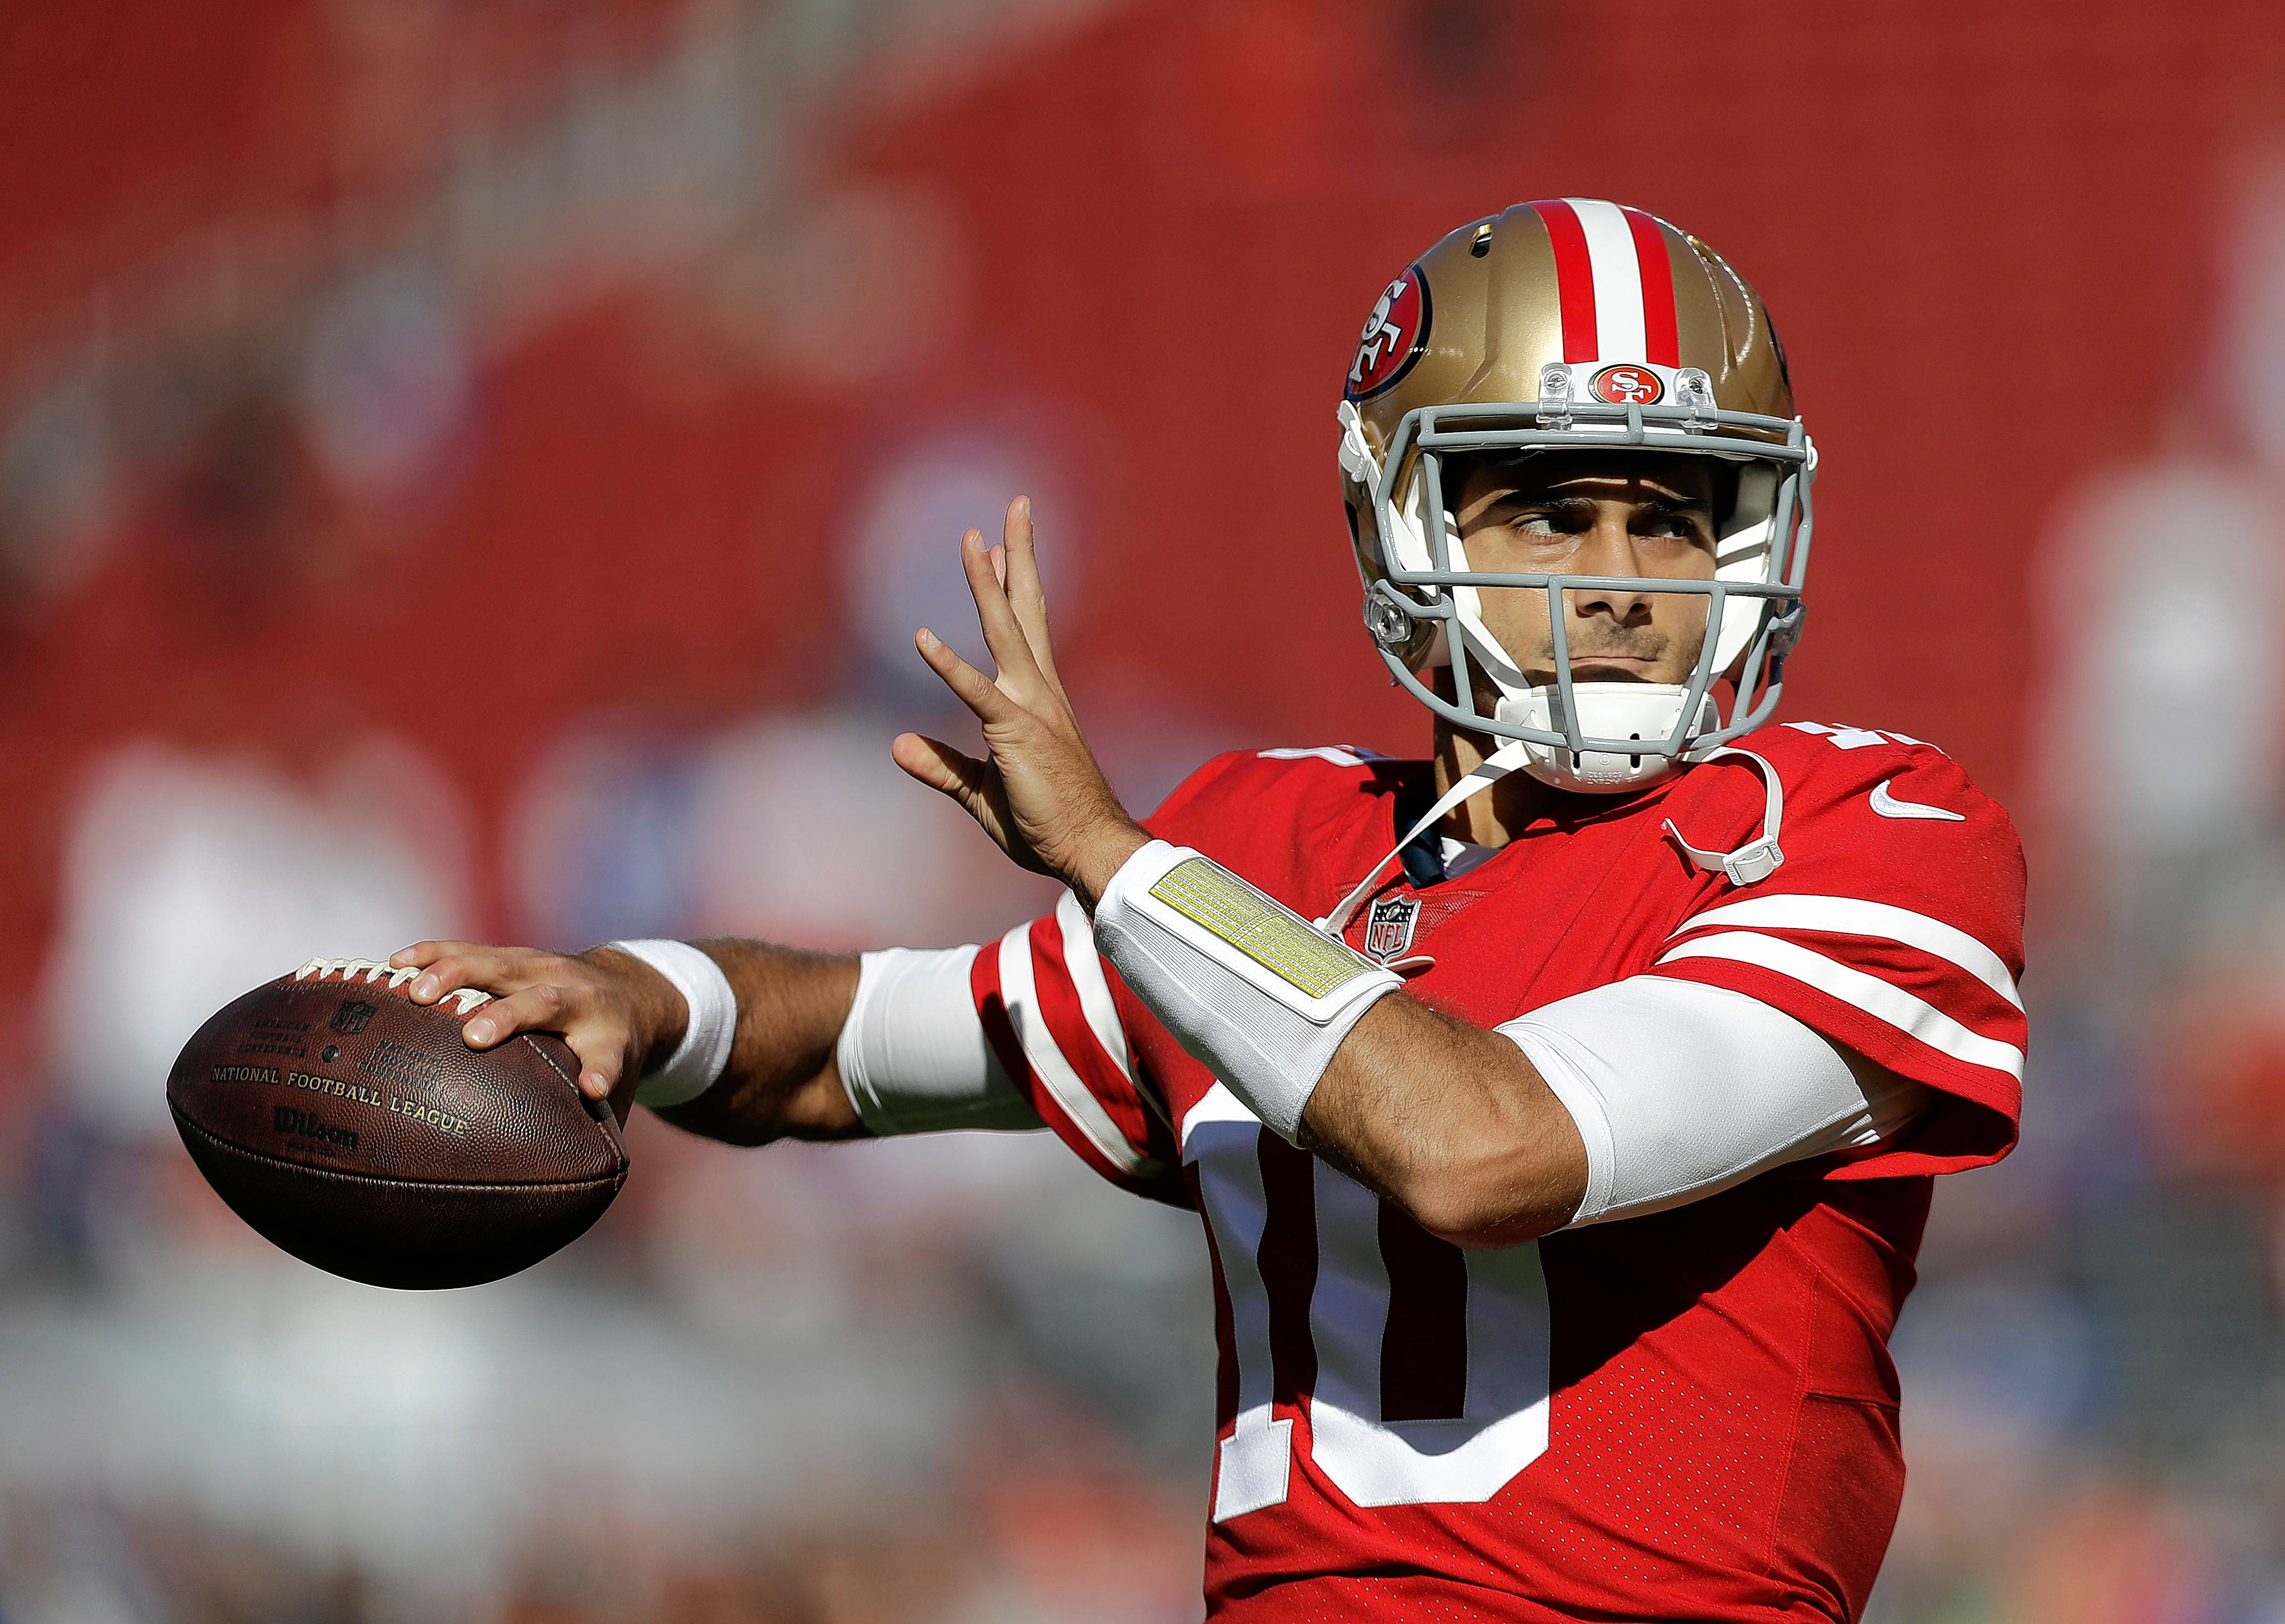 Report: 49ers looking at Garoppolo's first start after bye week